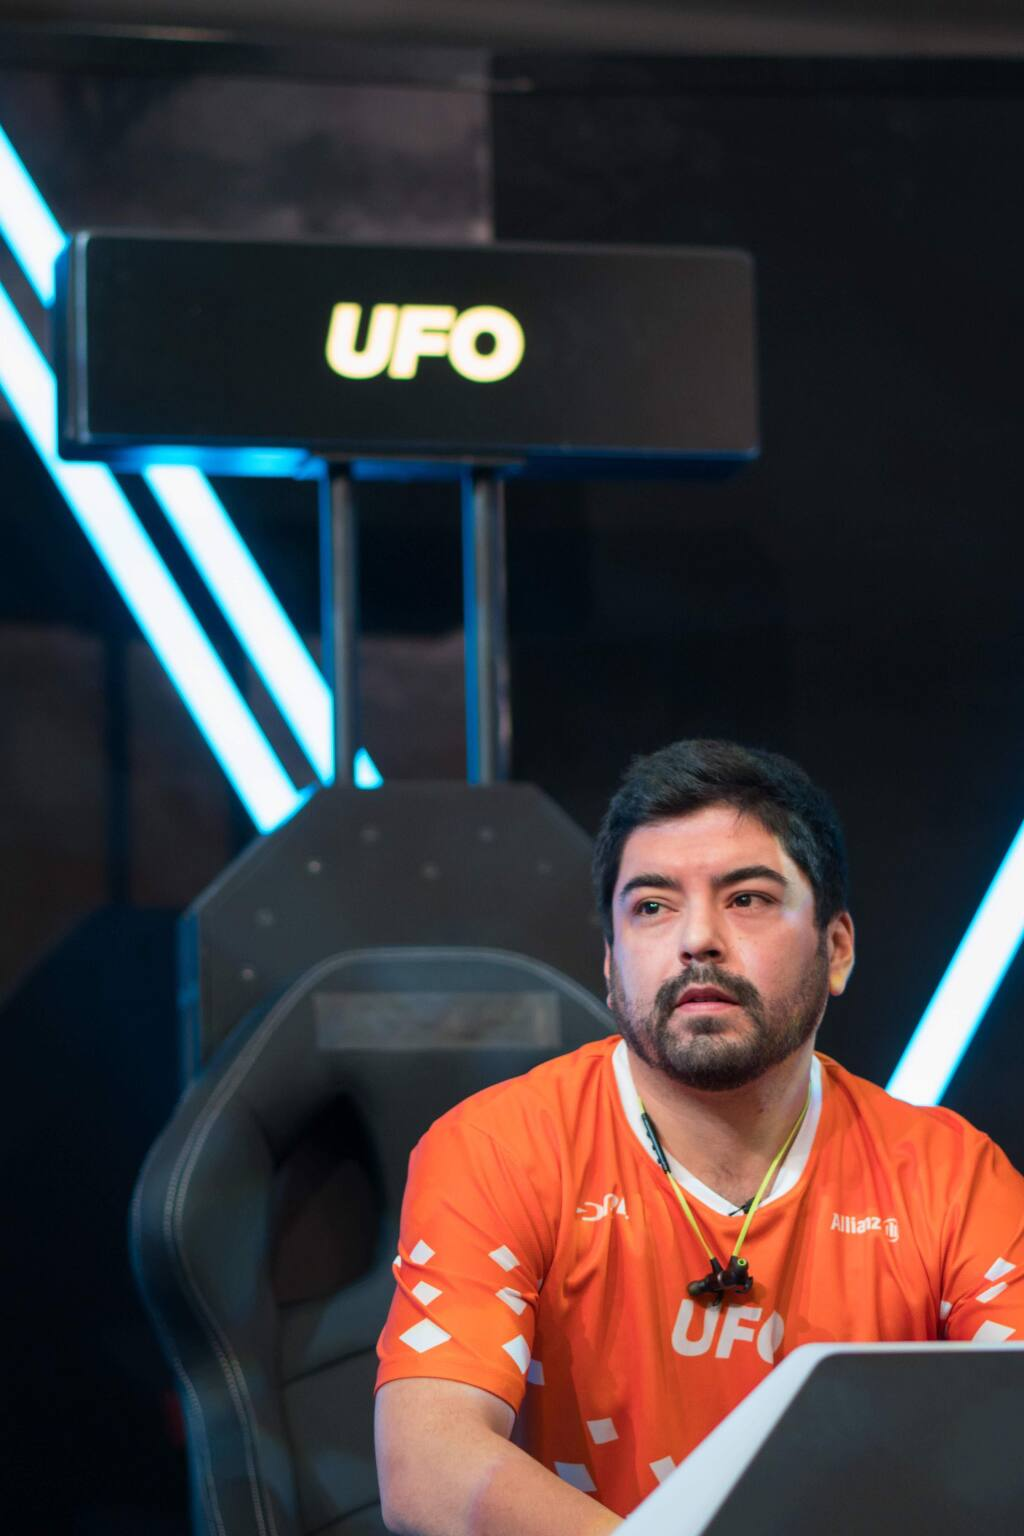 Emmanuel Mota, known as 'UFO' on 'Drone Racing League,' takes a break in the seat from which he controls his drone during races. The third season of the show, featuring Mota, airs on ESPN begins on Sept. 6, 2018. (COURTESY OF EMMANUEL MOTA)